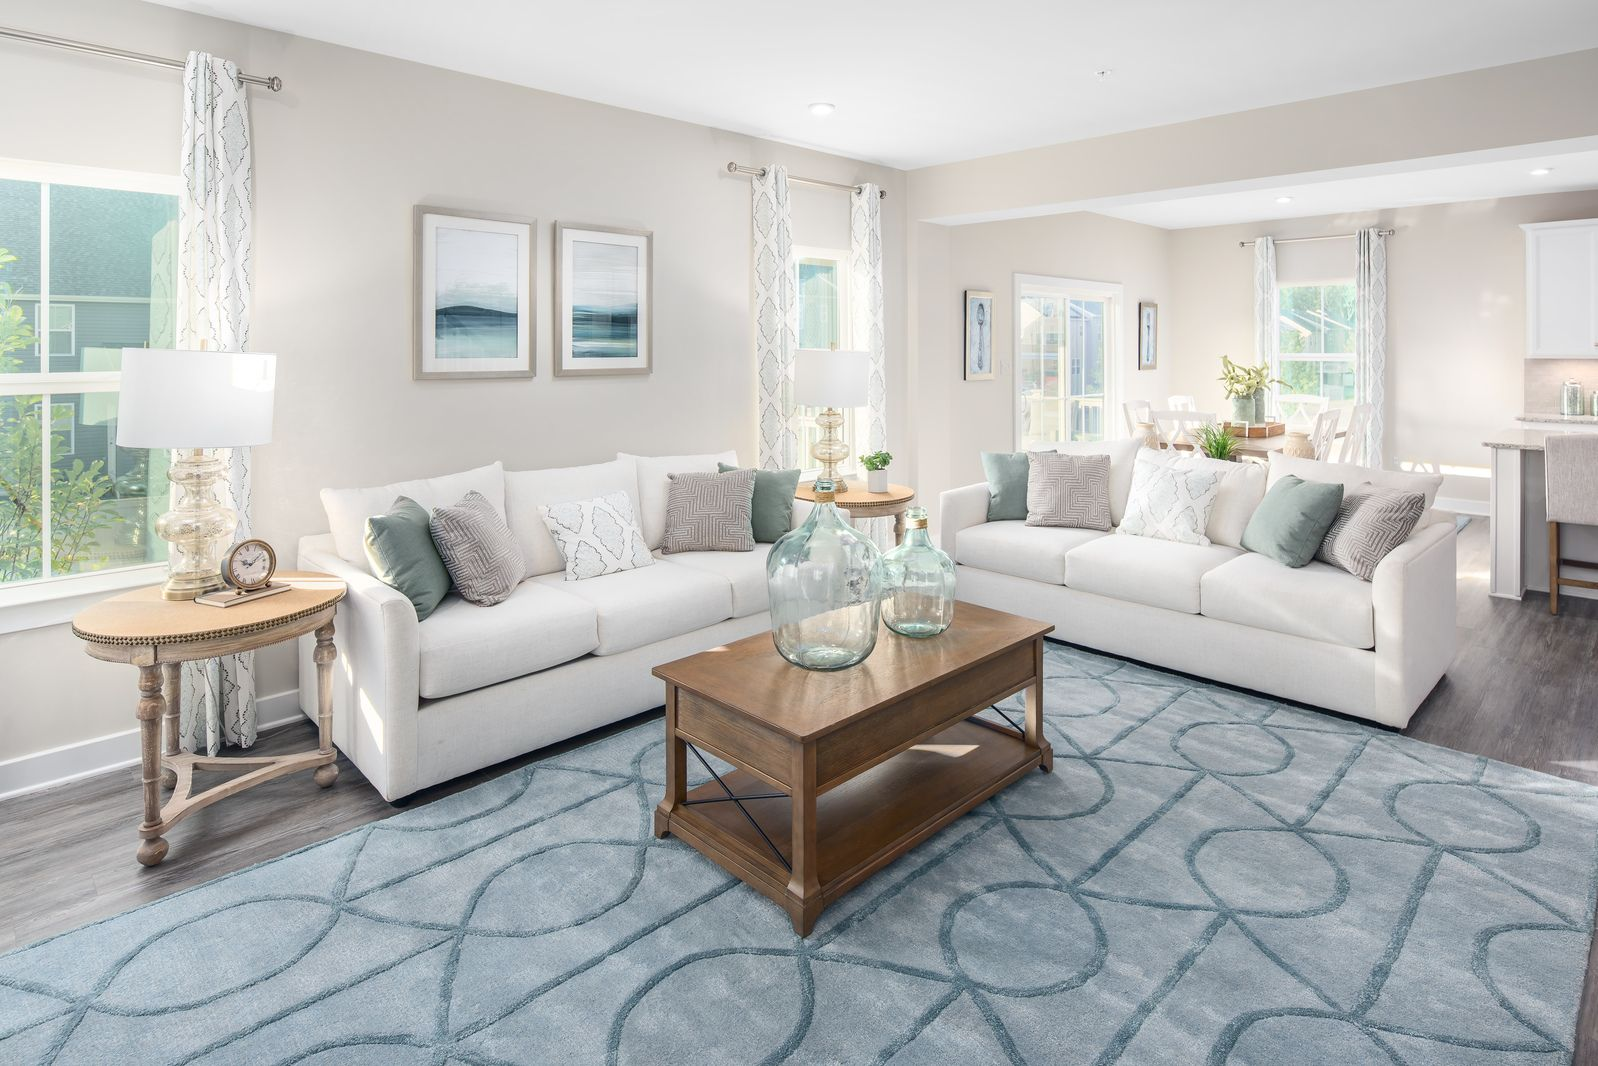 Living Area featured in the Ballenger By HeartlandHomes in Morgantown, WV